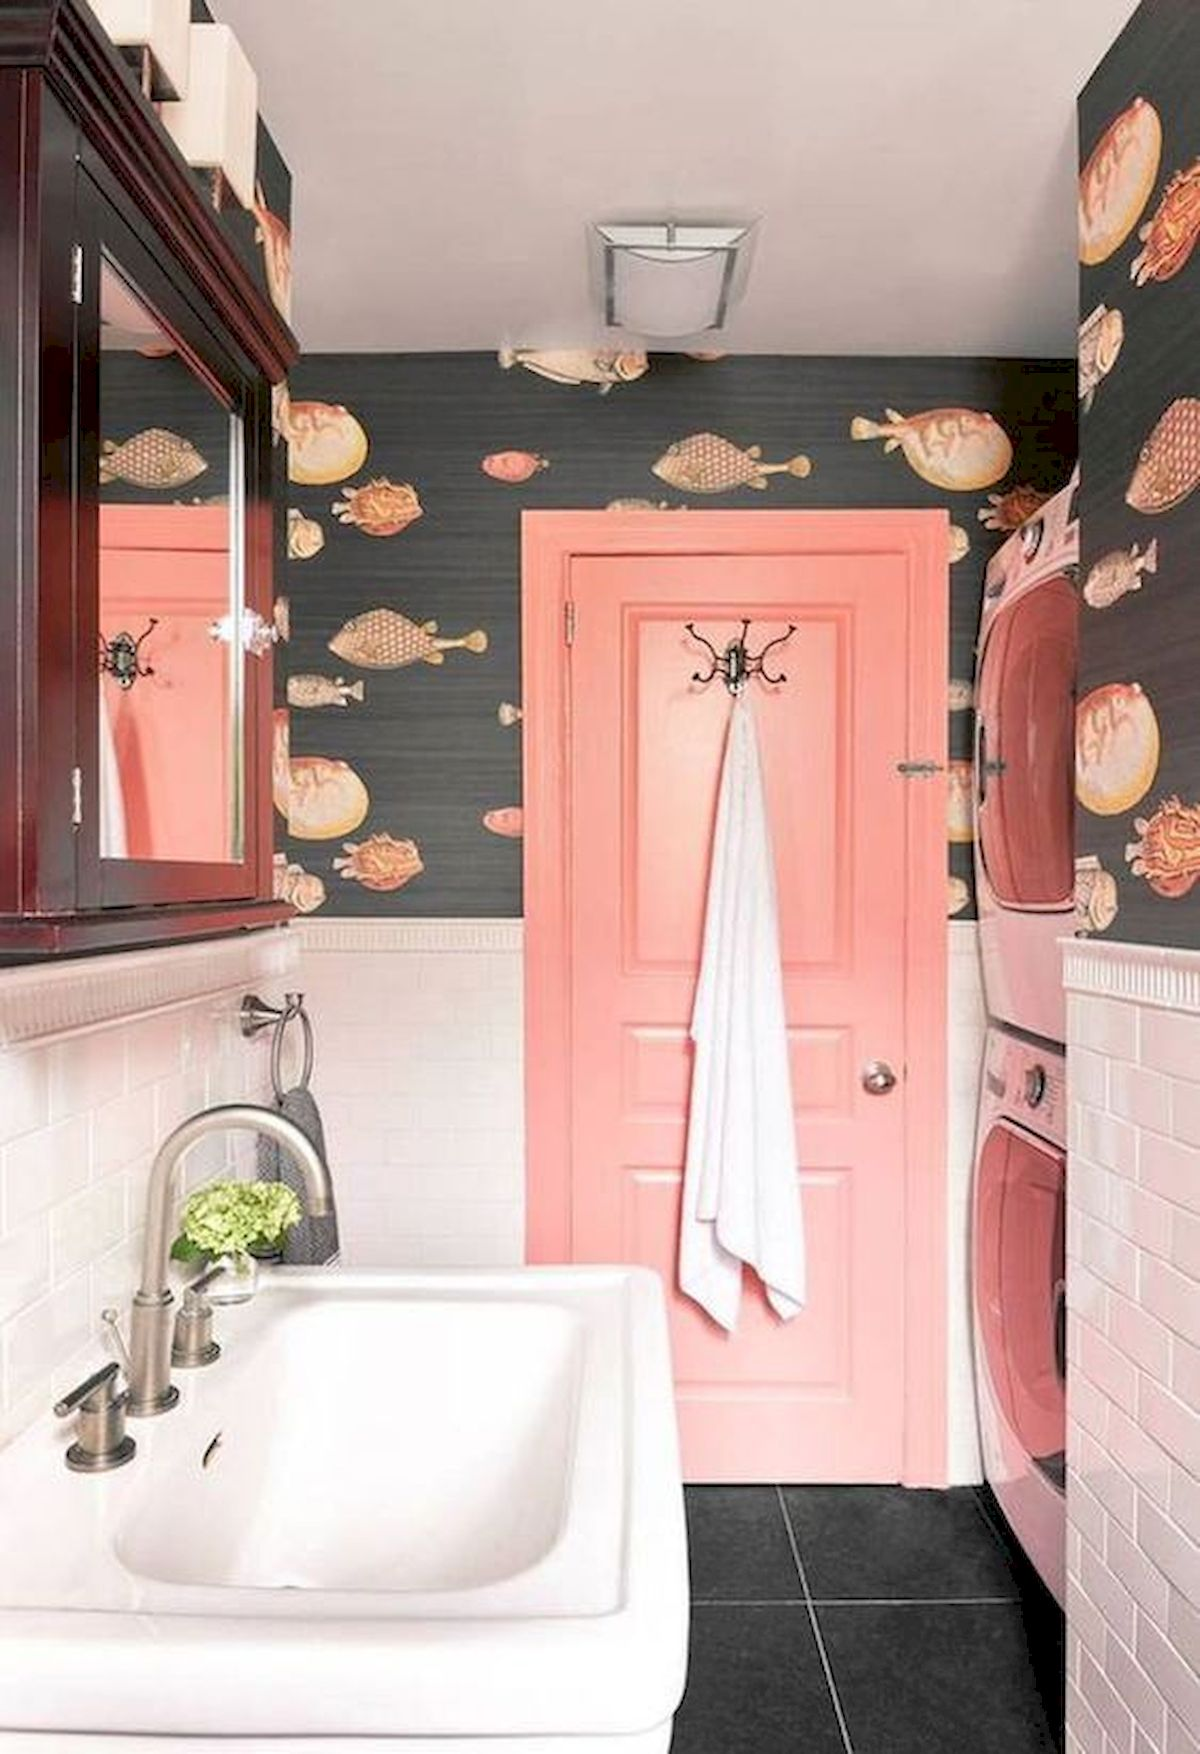 Add a fresh coat of paint  | 15 Creative and Budget Friendly Home Renovation Tips| Her Beauty